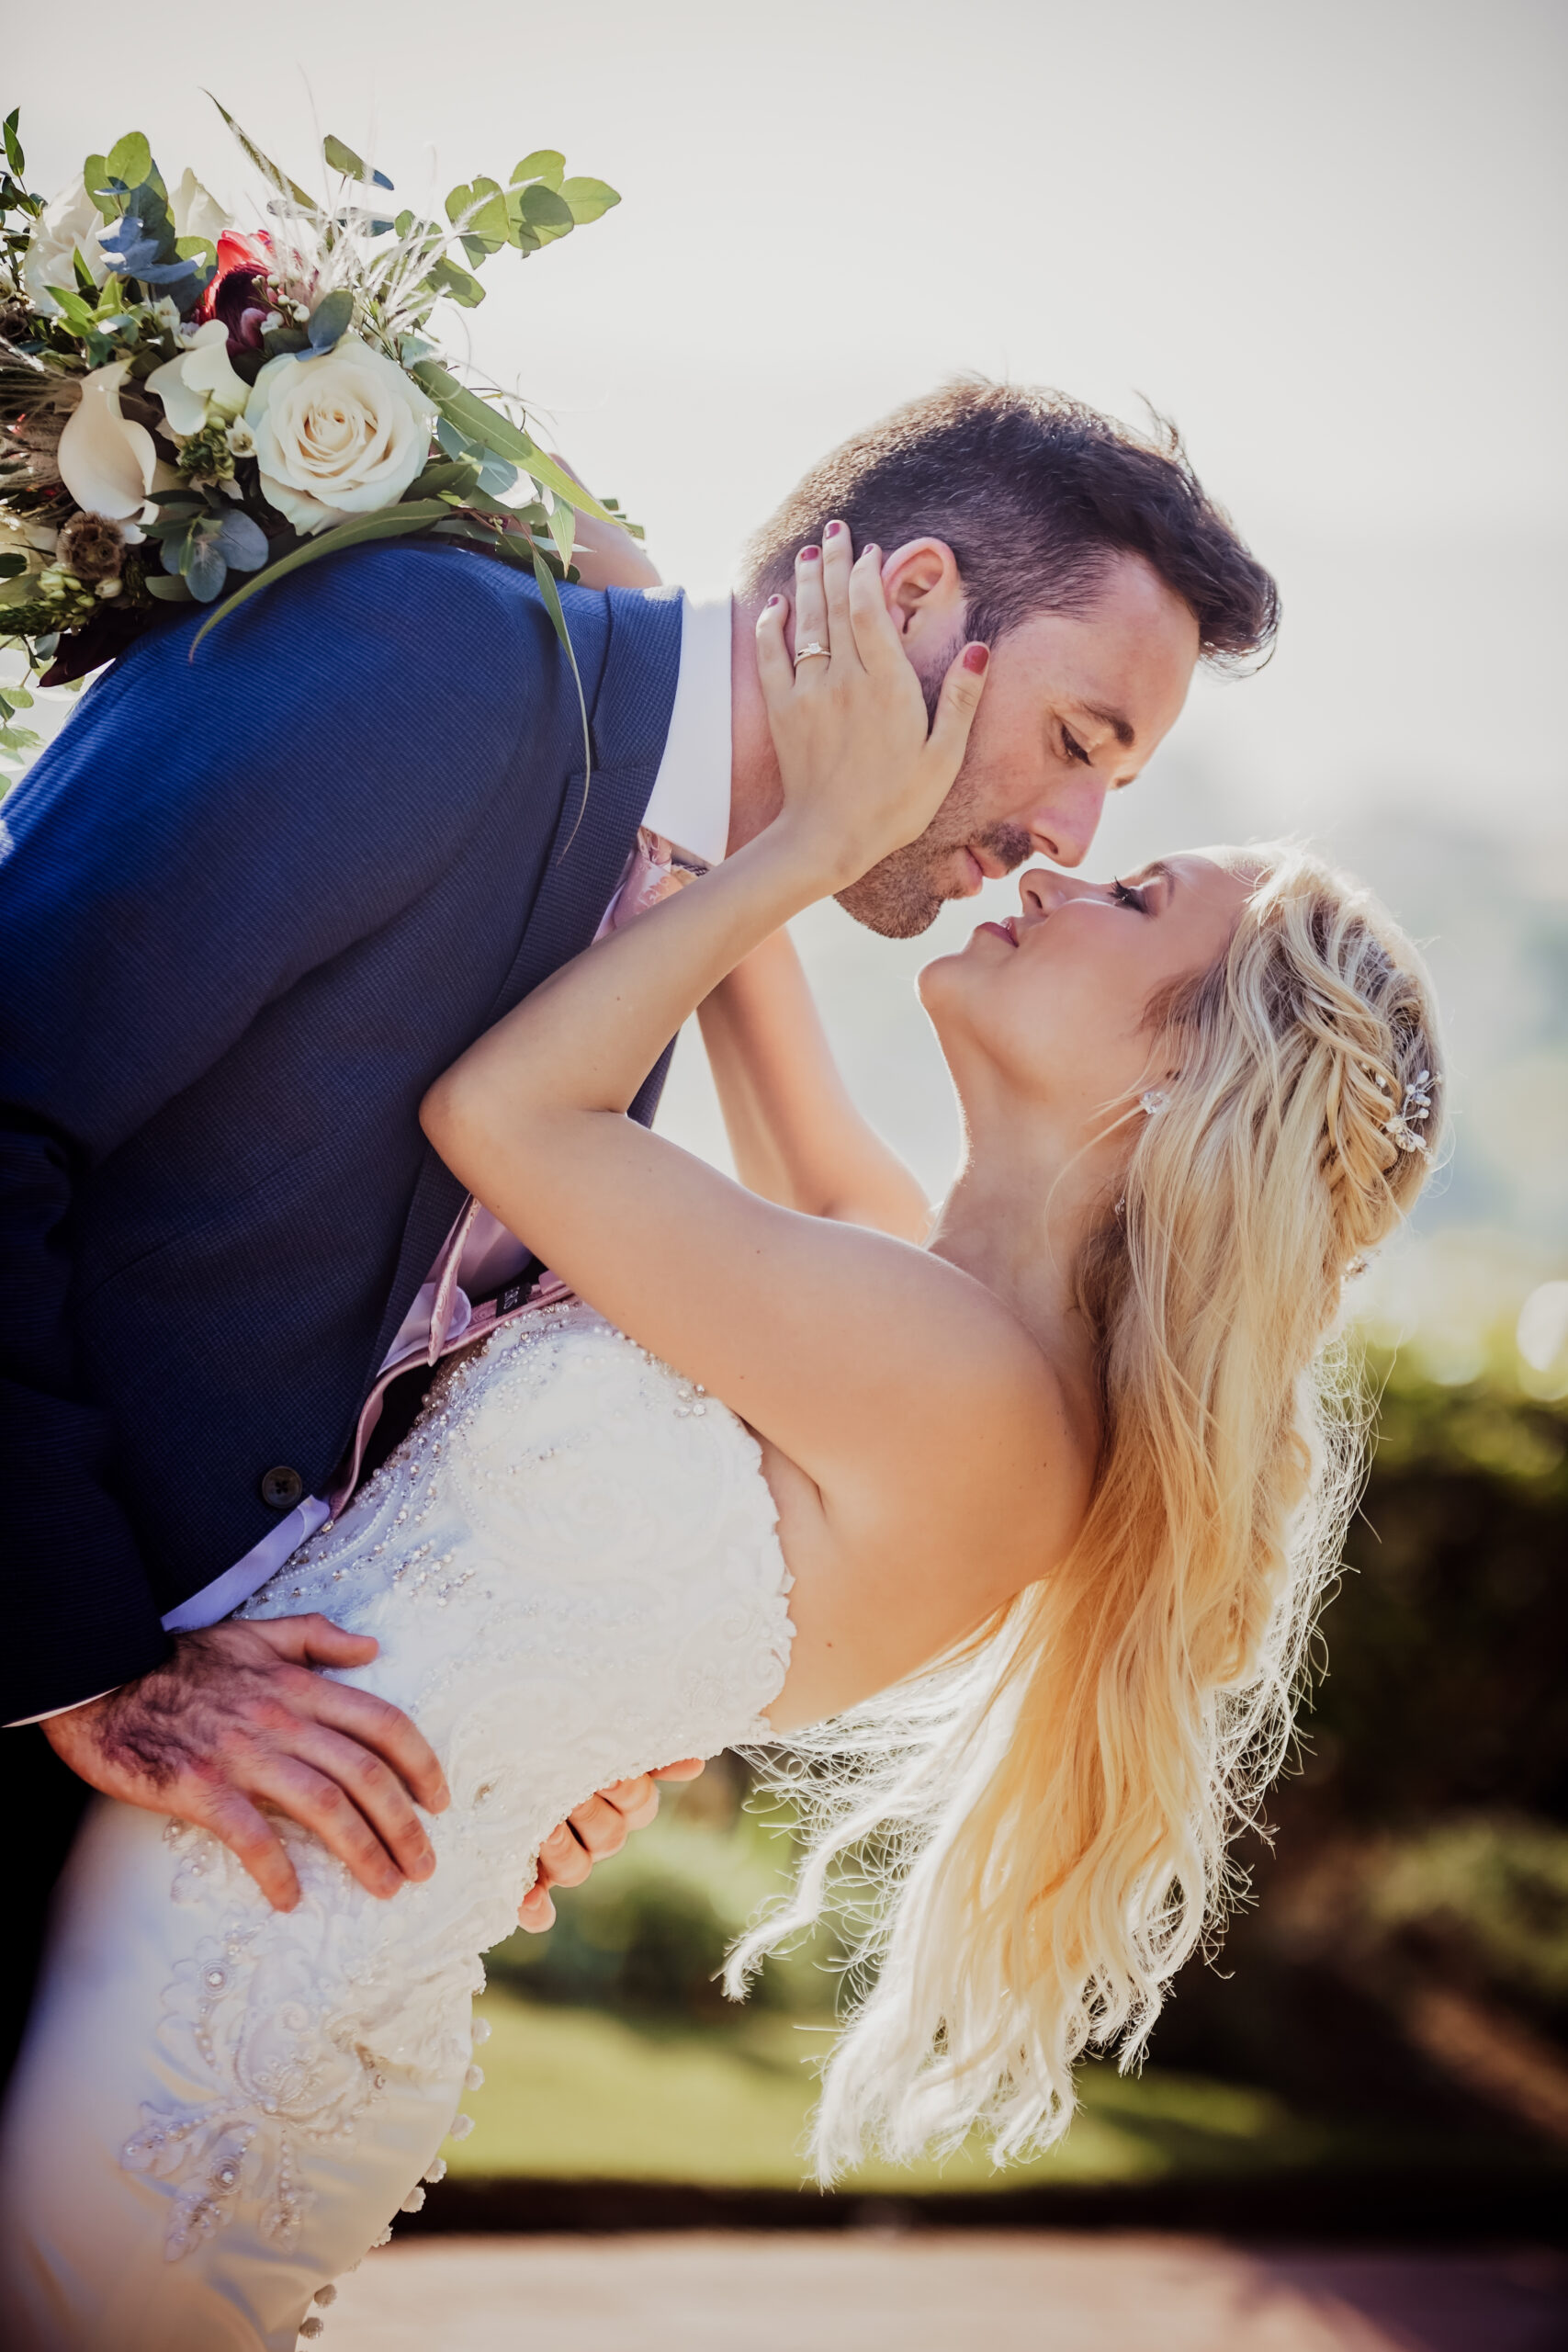 The bride and groom share a kiss after the ceremony - Rebecca Davidson Photography